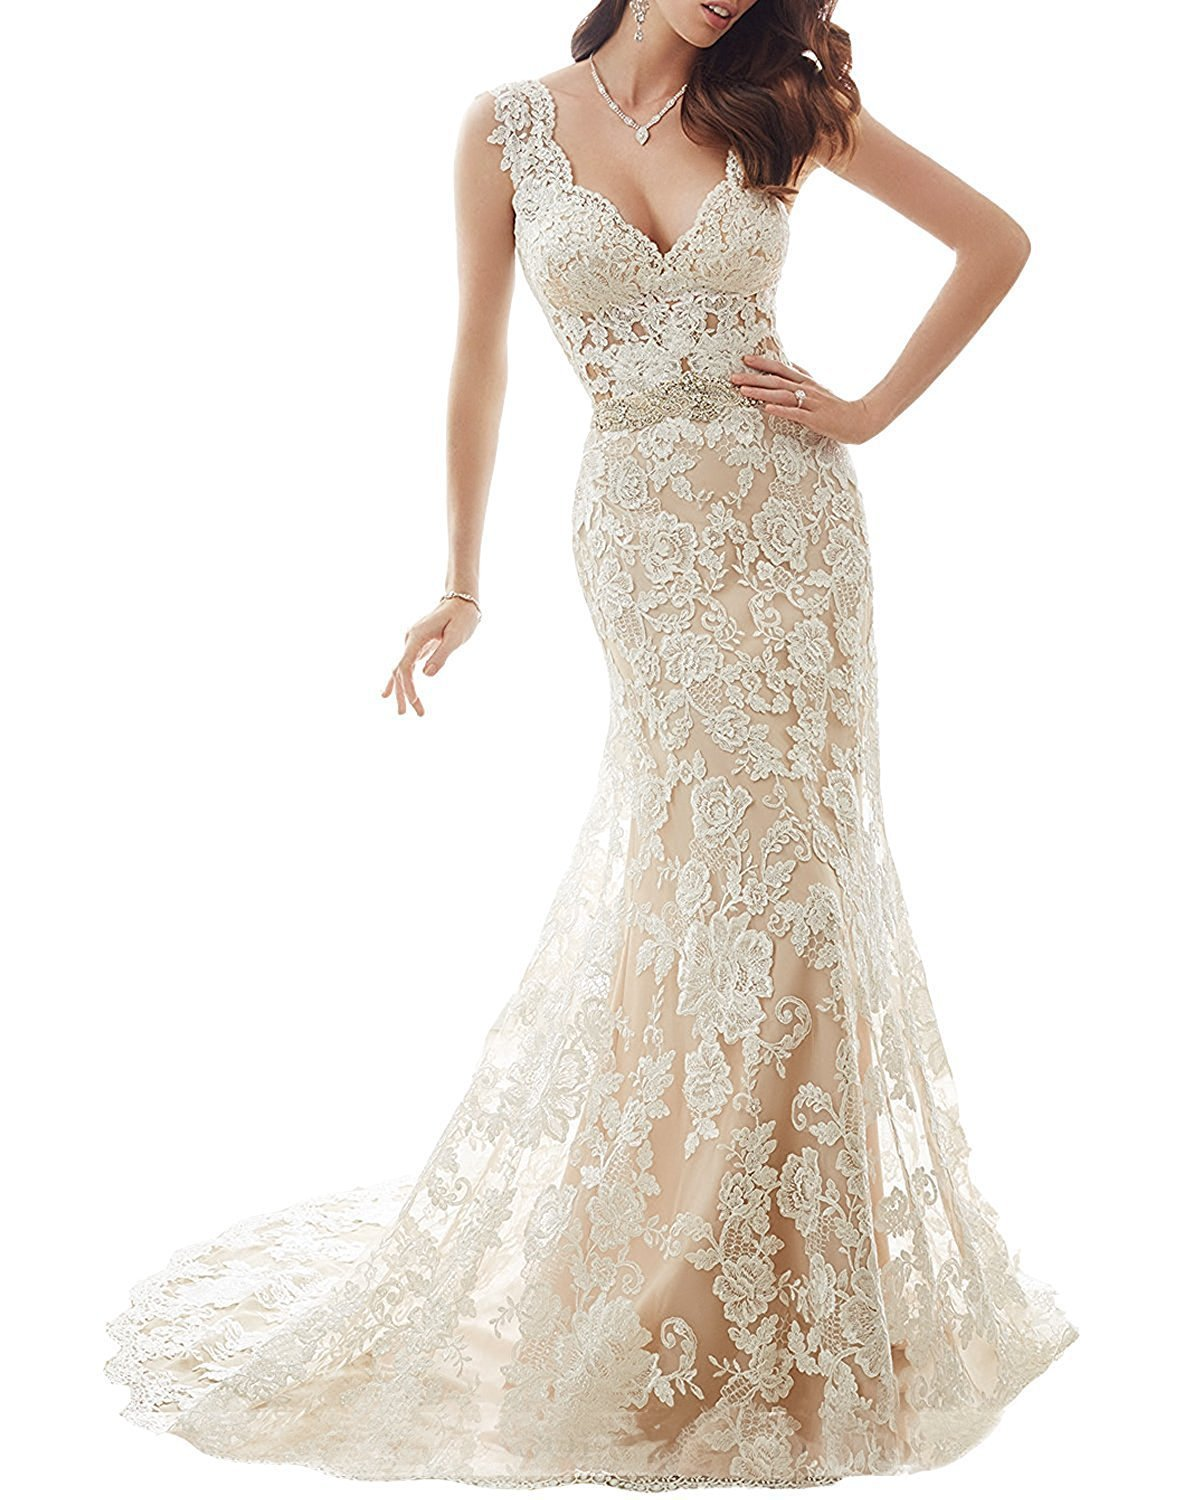 NANIYA Illusion Back Mermaid Wedding Dress for Bride Lace Formal Gown with Train